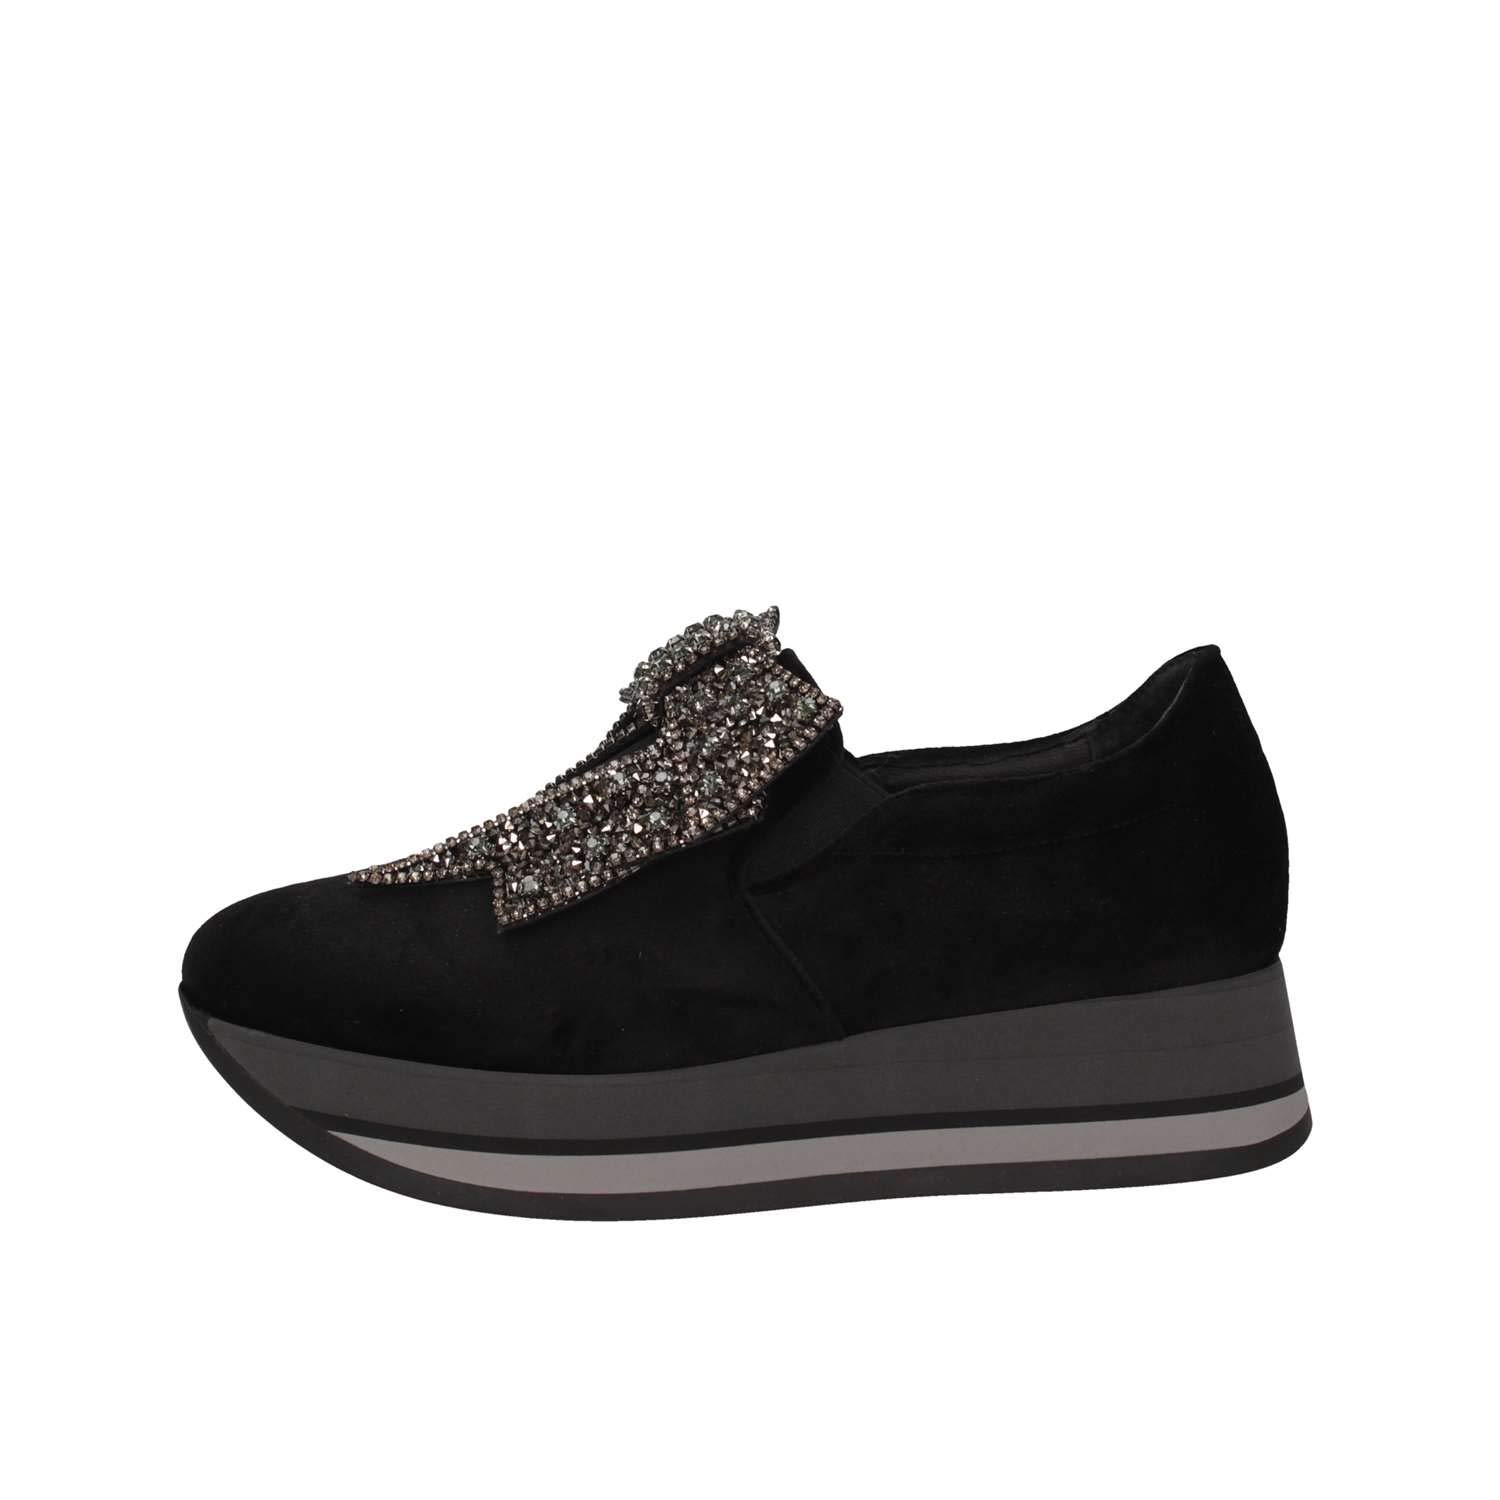 Luni Made In Femme Italy Made 1644 19809 VELLUTO Nero Slip on Femme Noir 8ebbc2f - deadsea.space